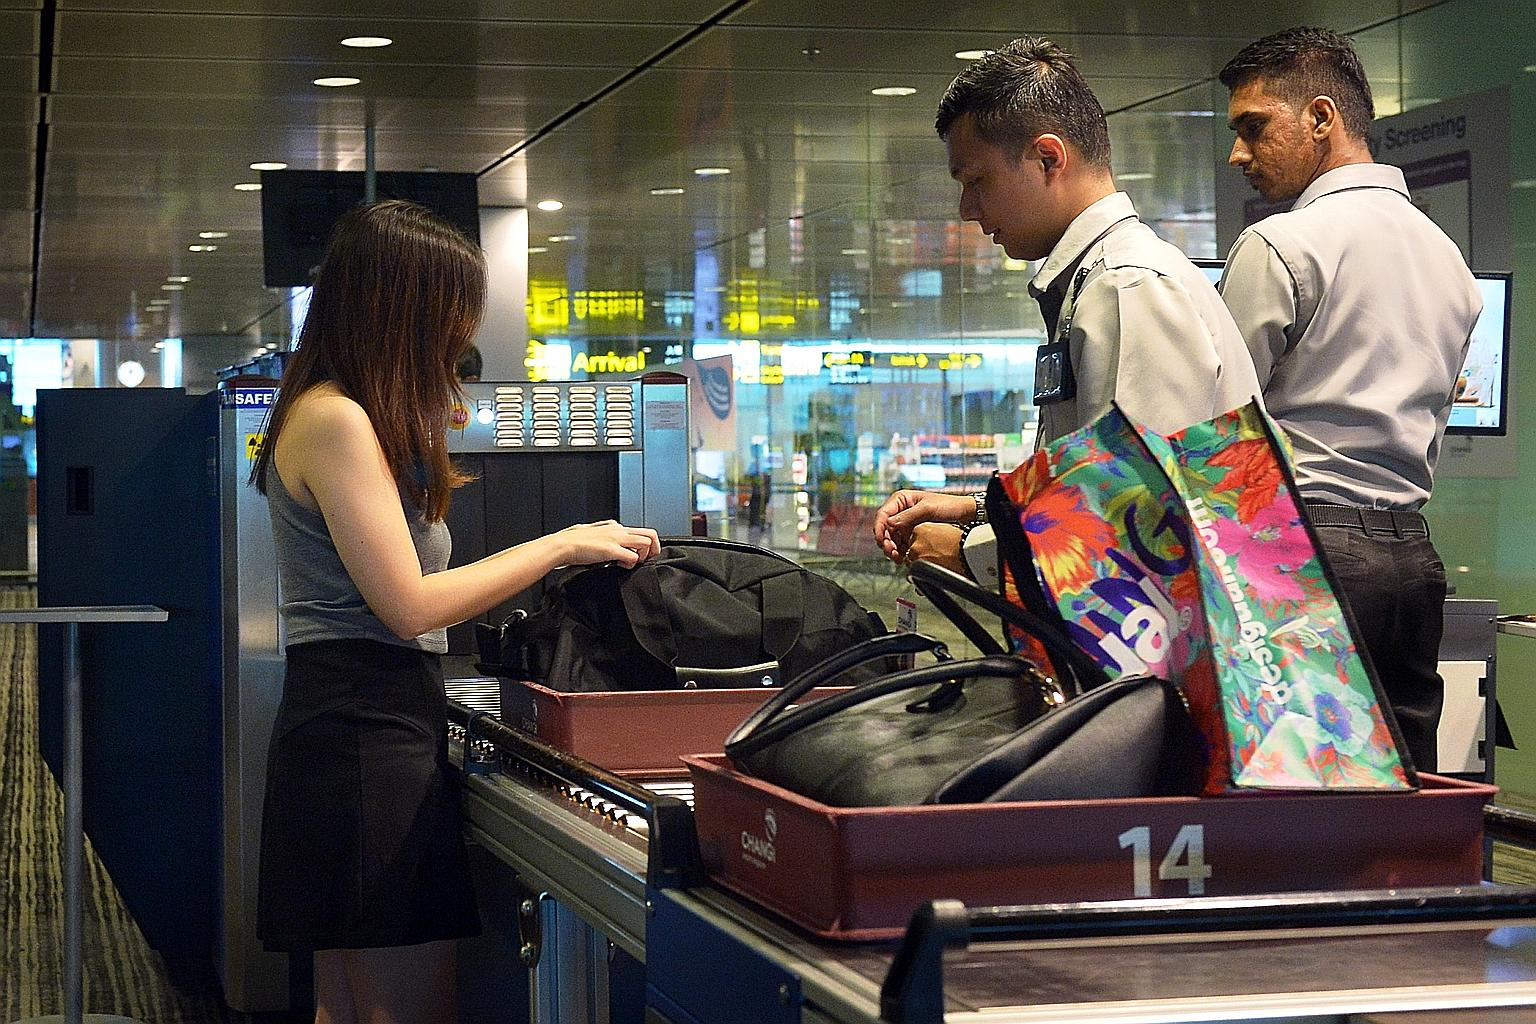 Travellers may need to forgo snacks found in check-in baggage at airport